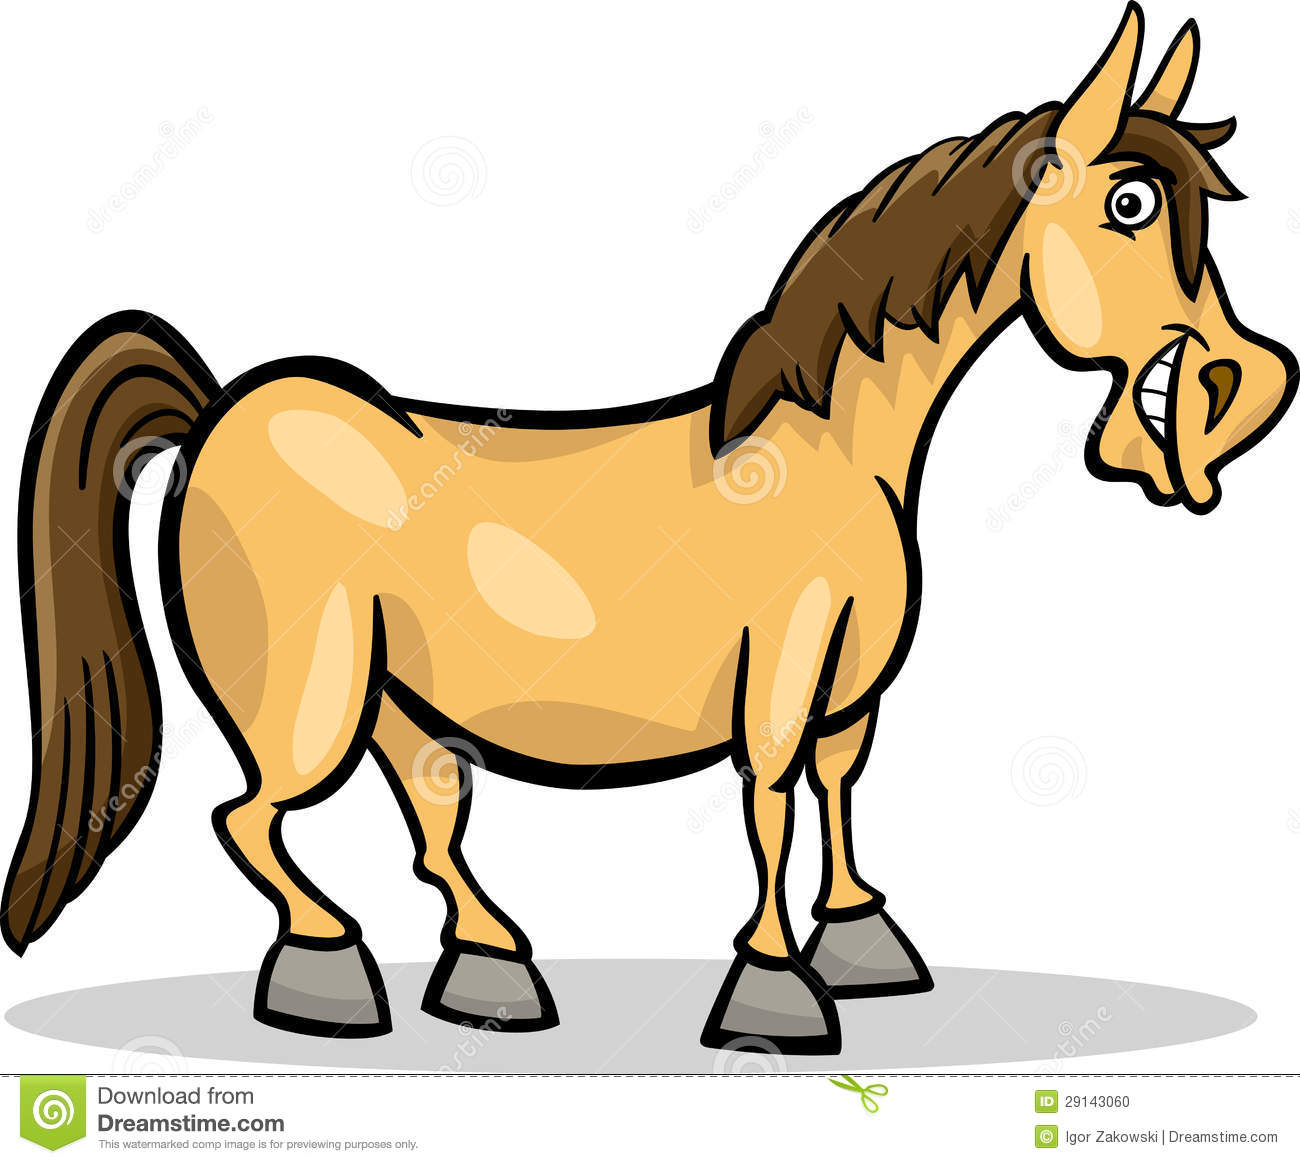 Cavallo clipart #4, Download drawings